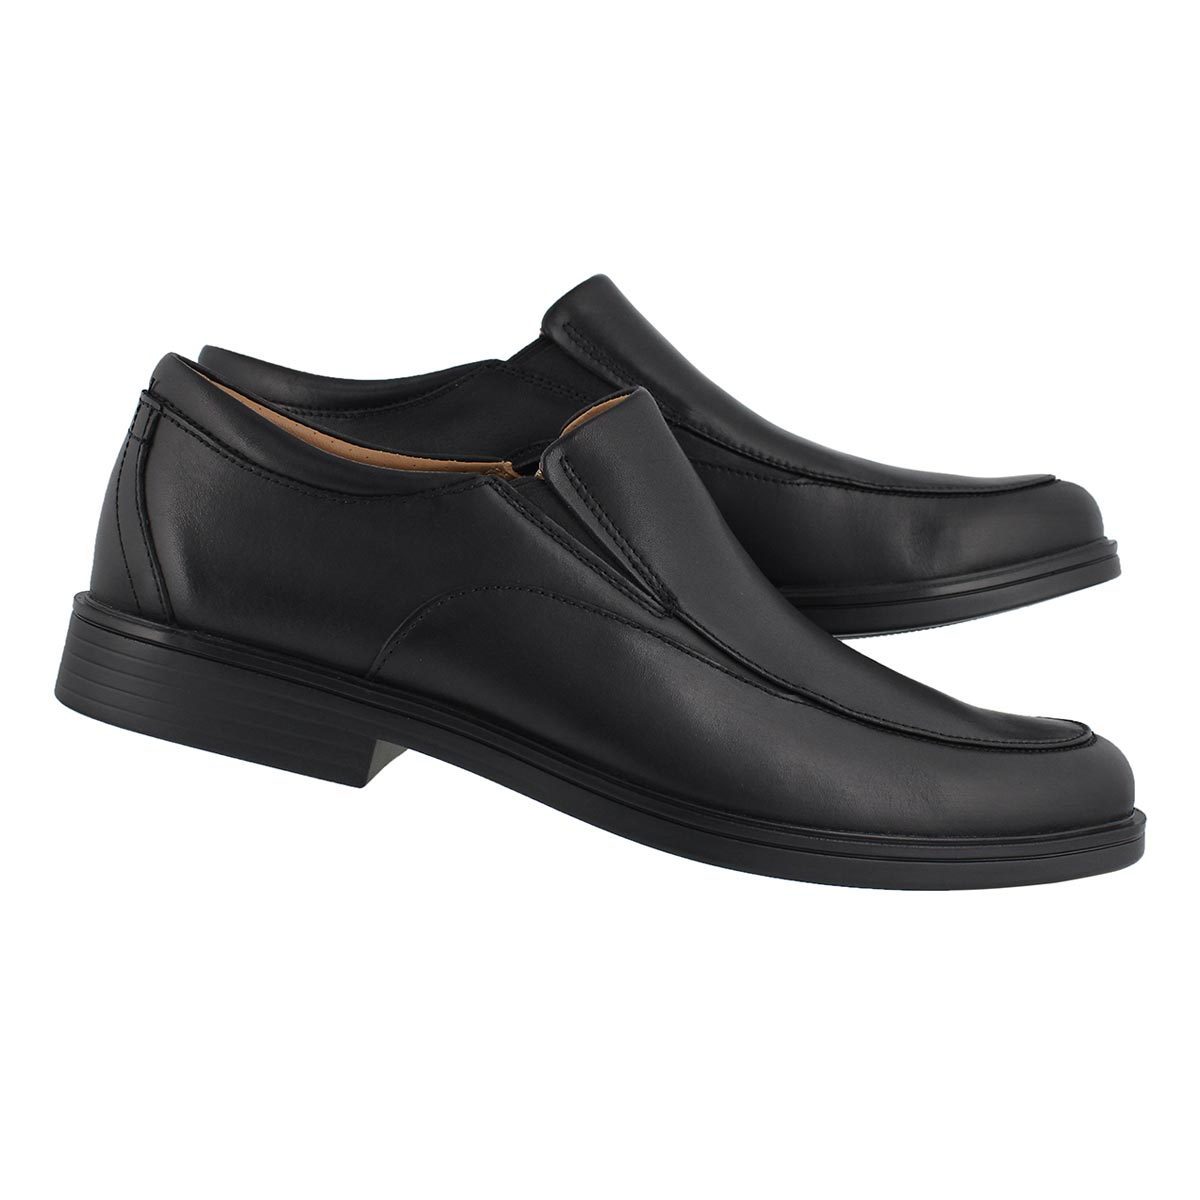 Mns UnAldric Walk blk slip on dress shoe